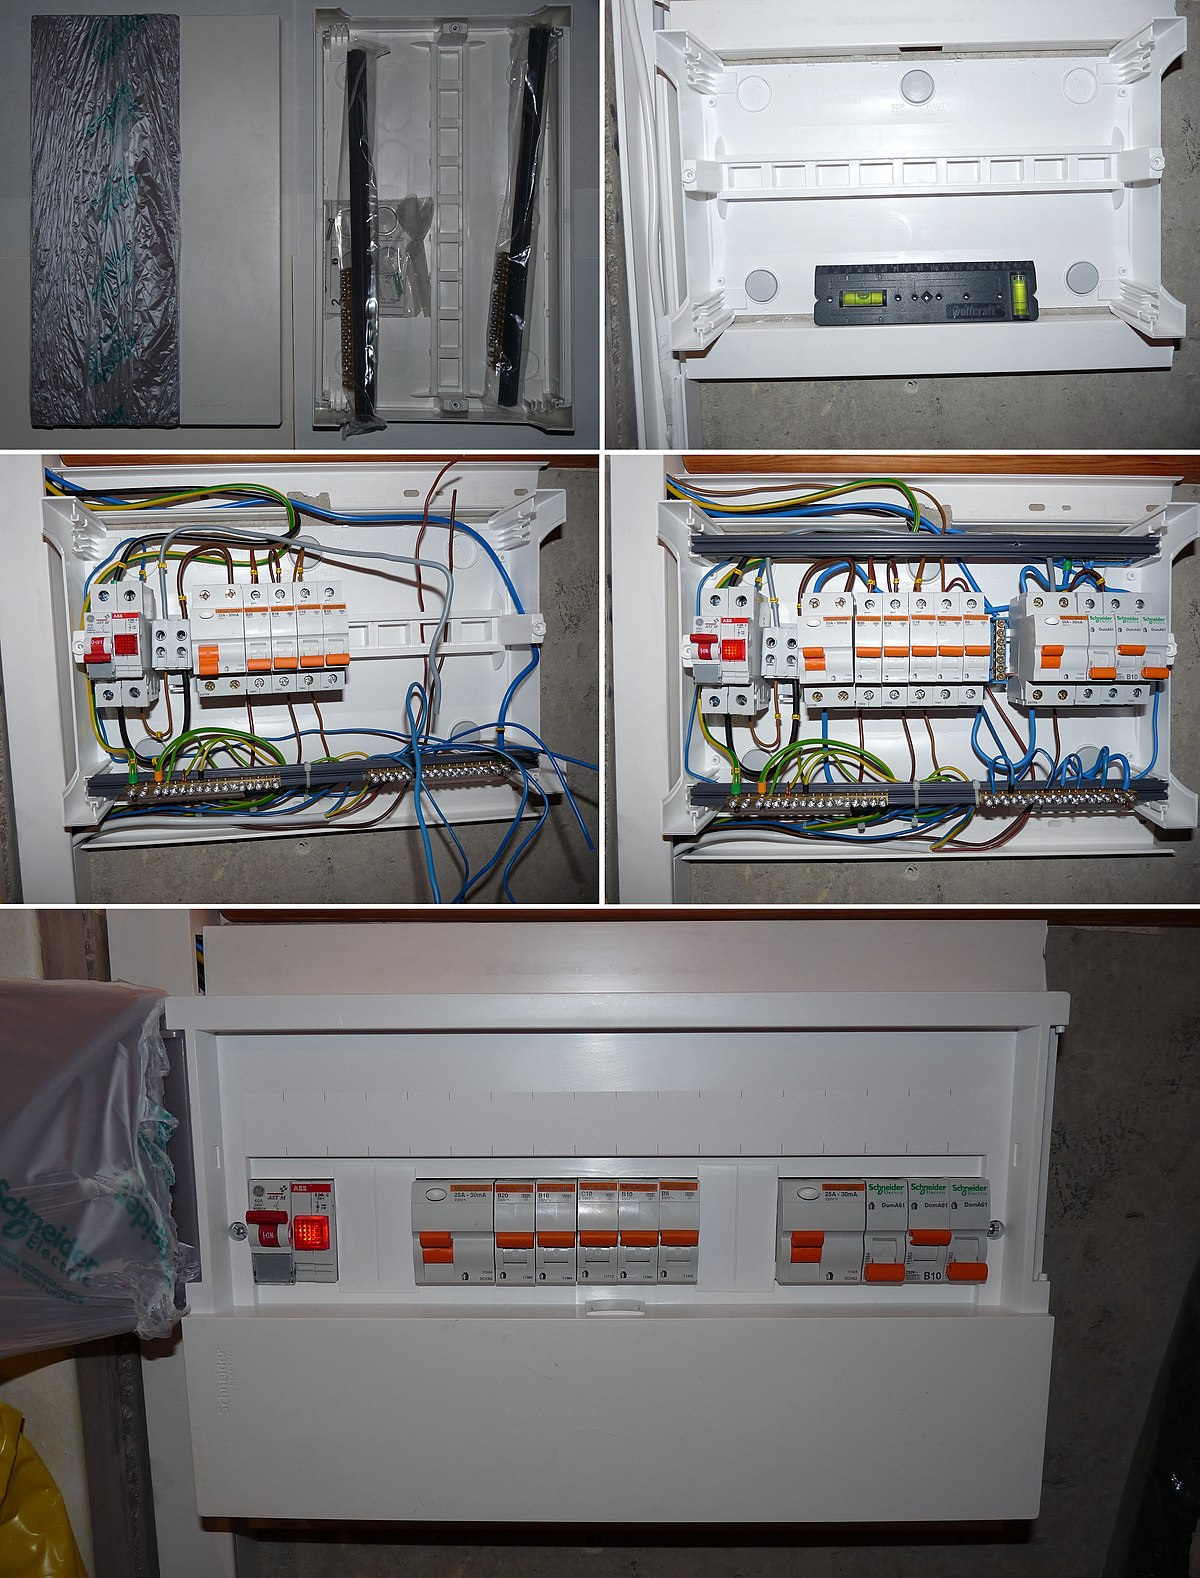 File:How to install the fuse box (in Europe).JPG - Wikimedia Commons  Wikimedia Commons